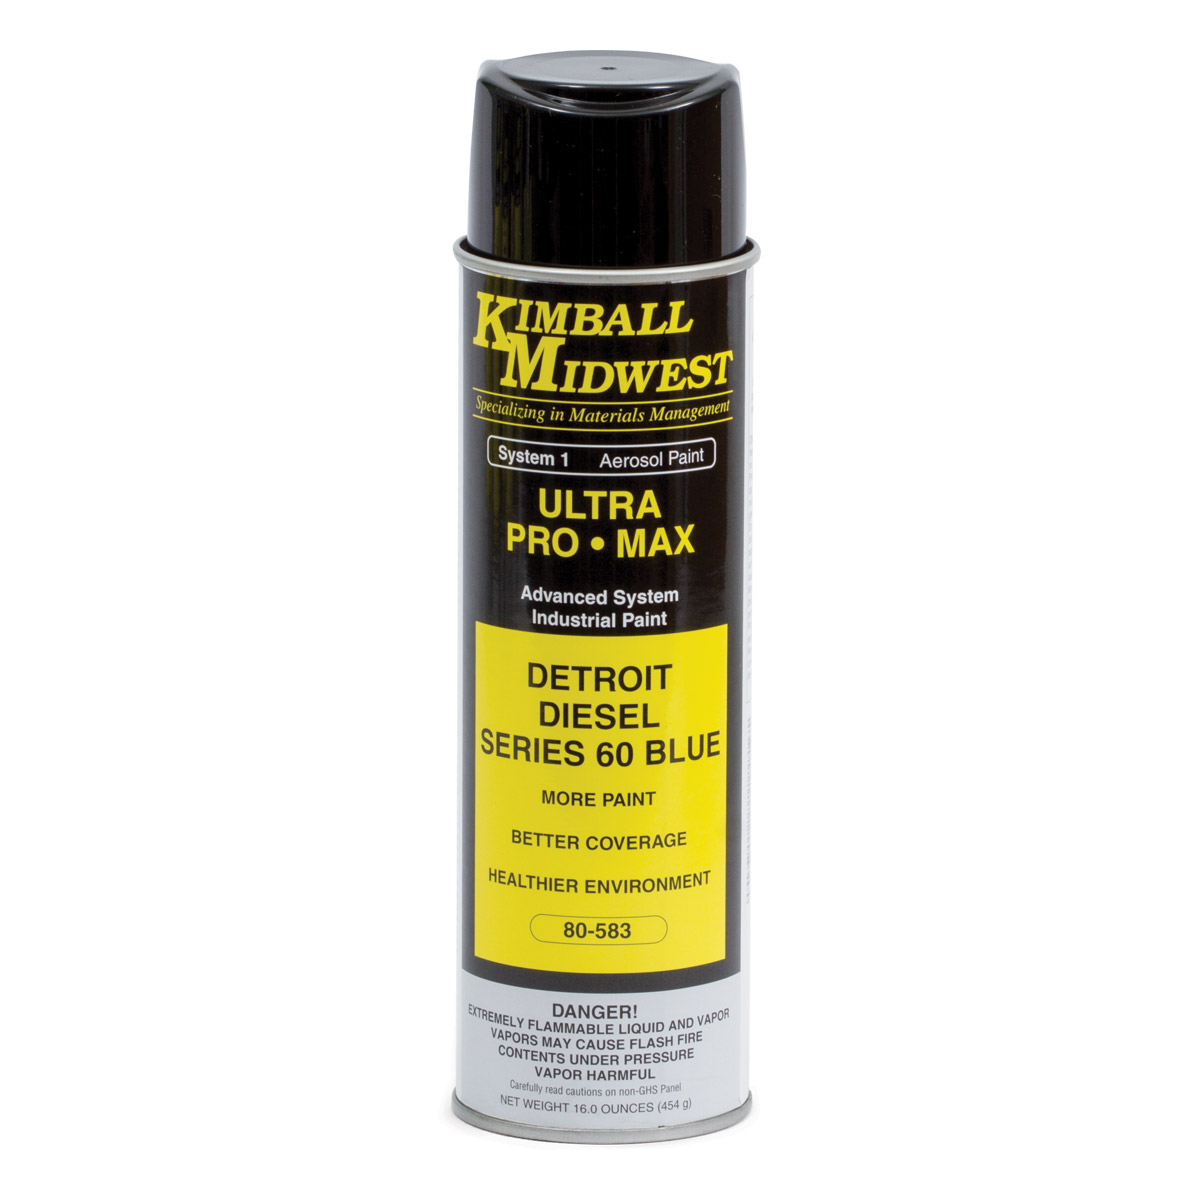 Detroit Diesel Series 60 Blue Ultra Pro-Max Paint - Kimball Midwest